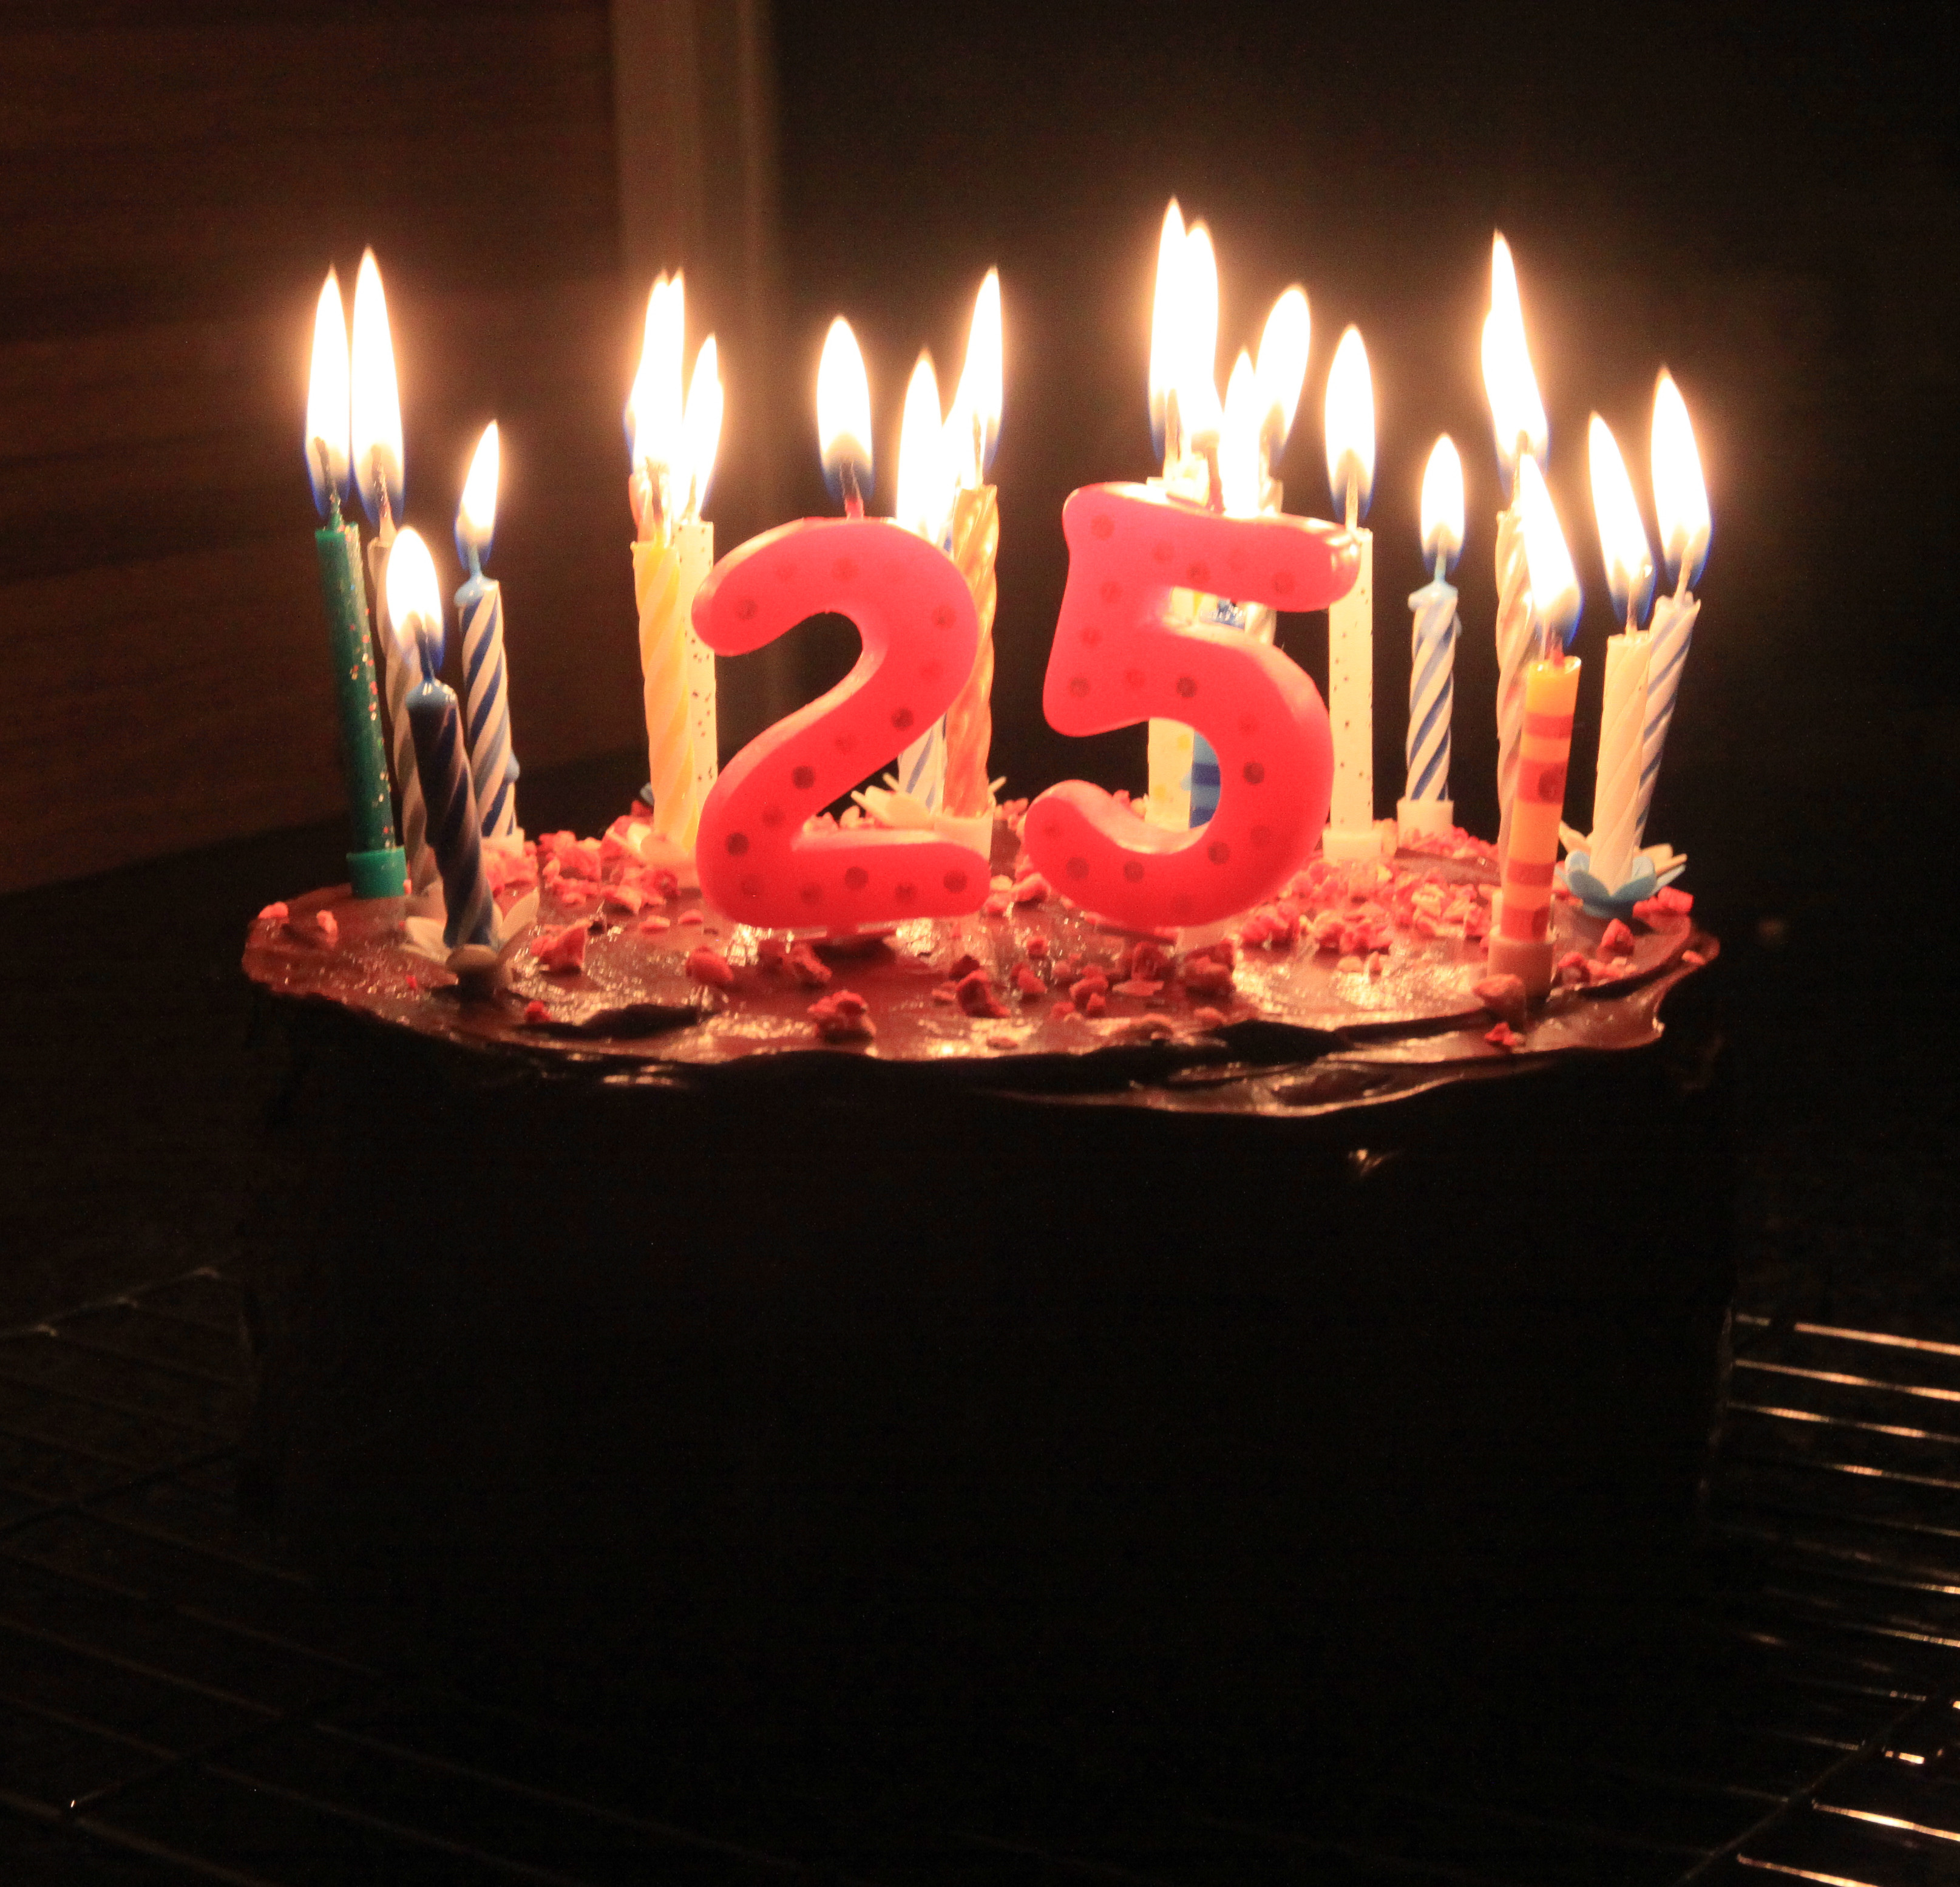 Best ideas about 25 Birthday Cake . Save or Pin My brother's 25th birthday cake it's VEGAN and general Now.